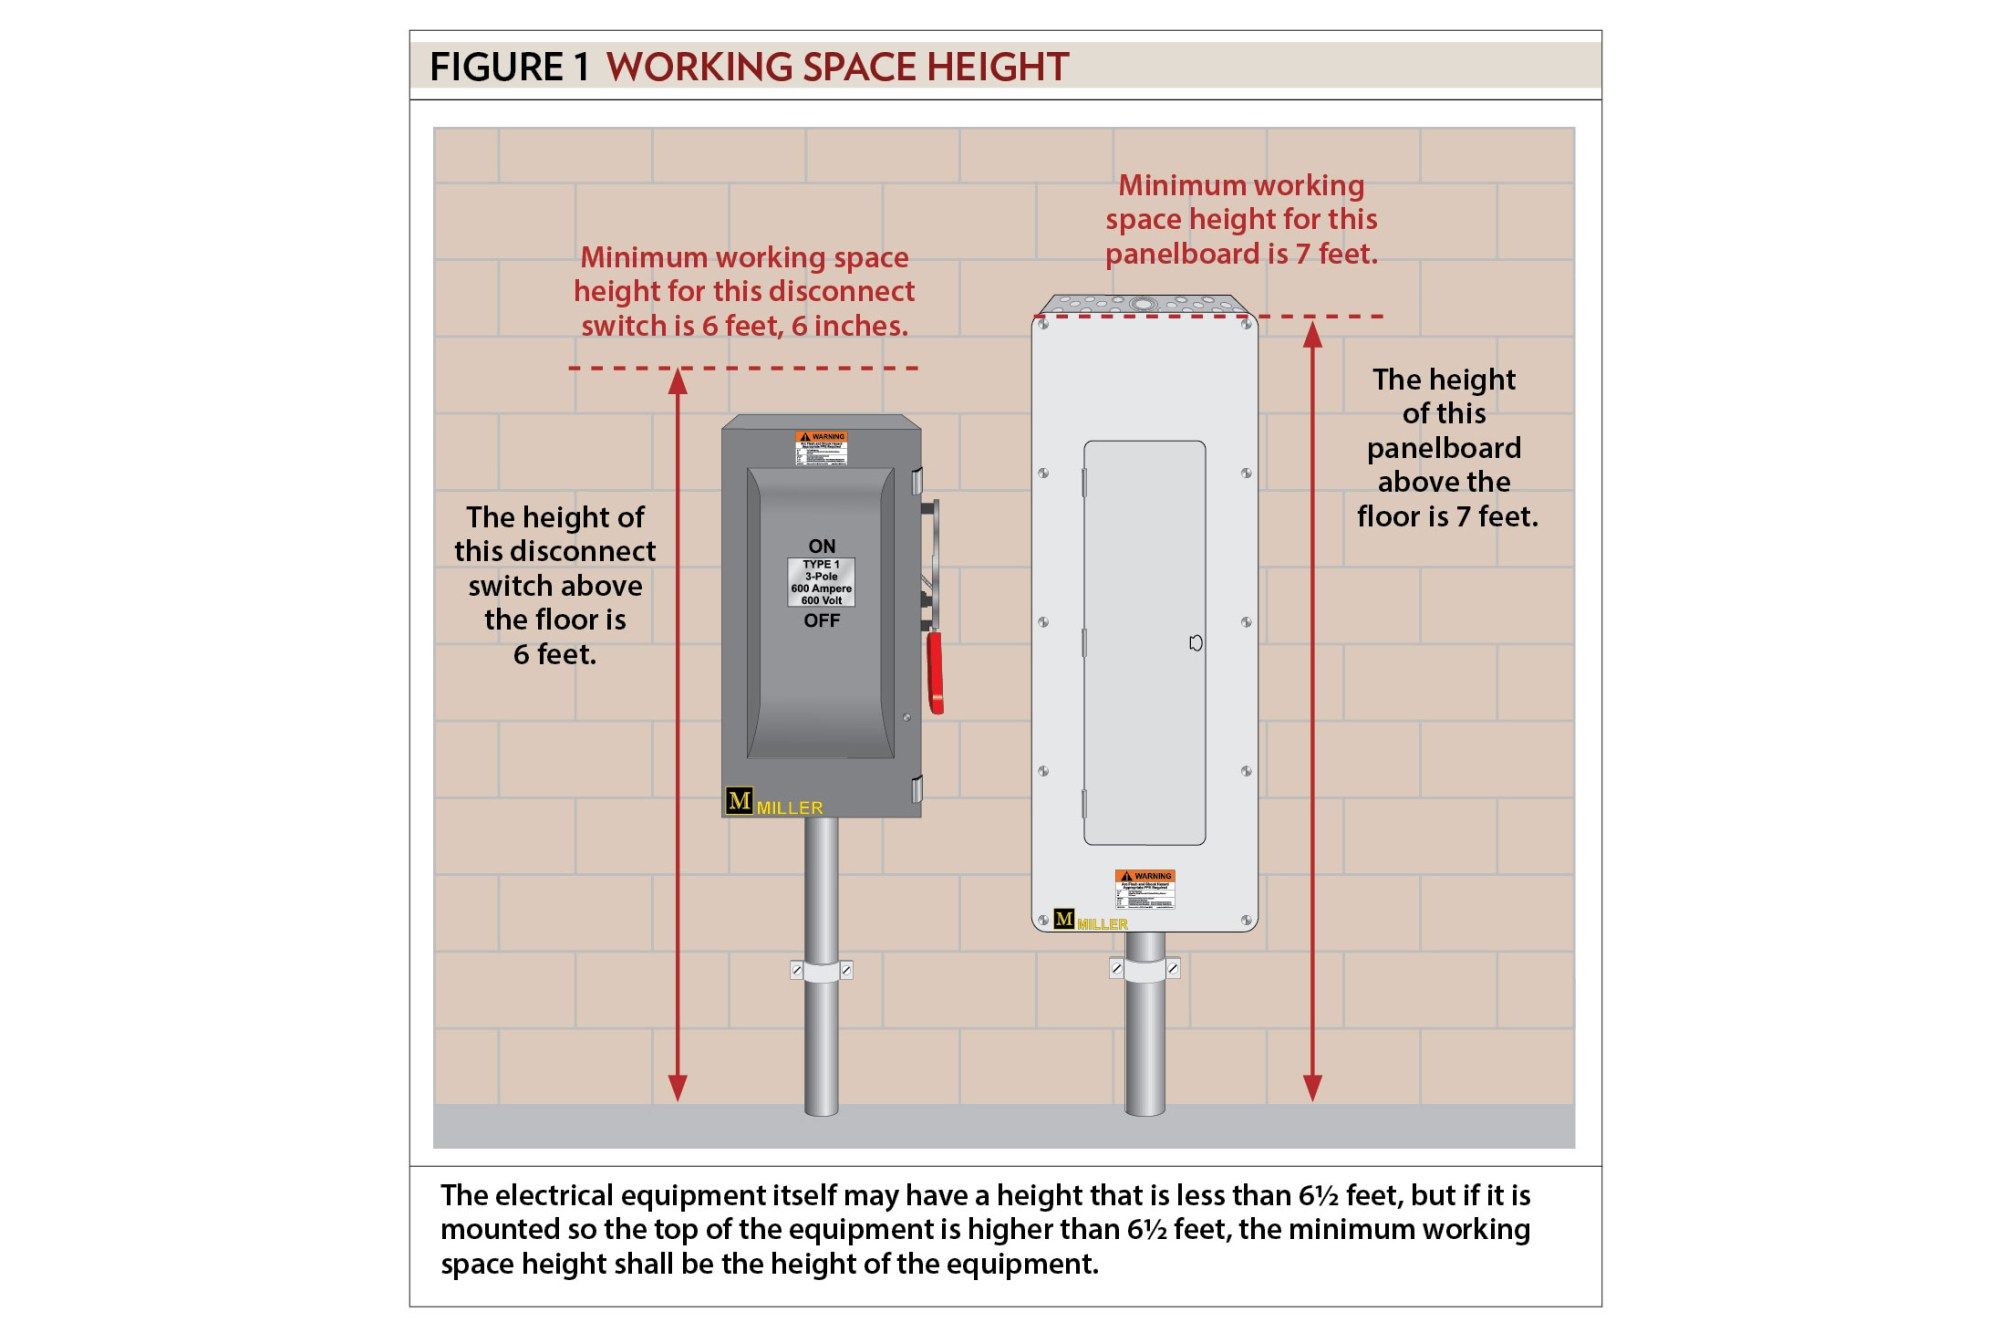 hight resolution of  disconnect fuse panel diagram of pole 3 general installation requirements part xx electrical contractorgeneral installation requirements part xx